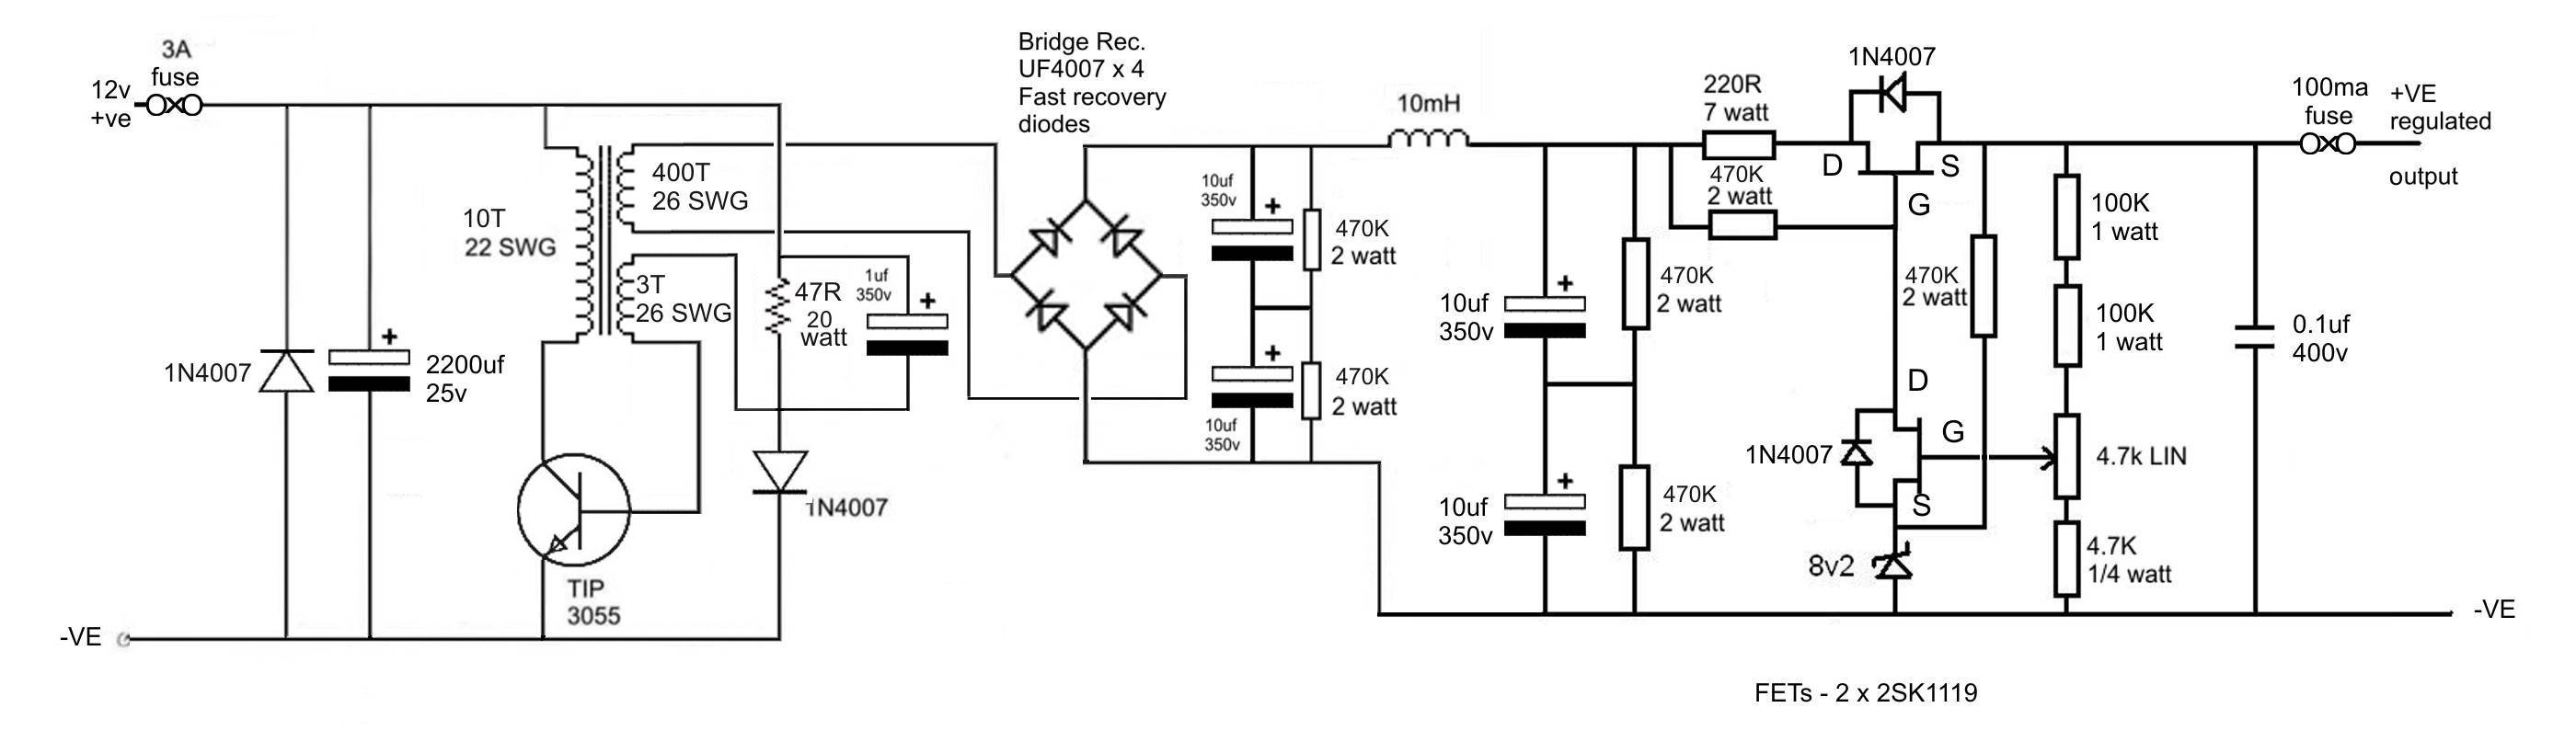 Ws62 Inverter Diagram Click On Image For Larger View Of Circuit Layout